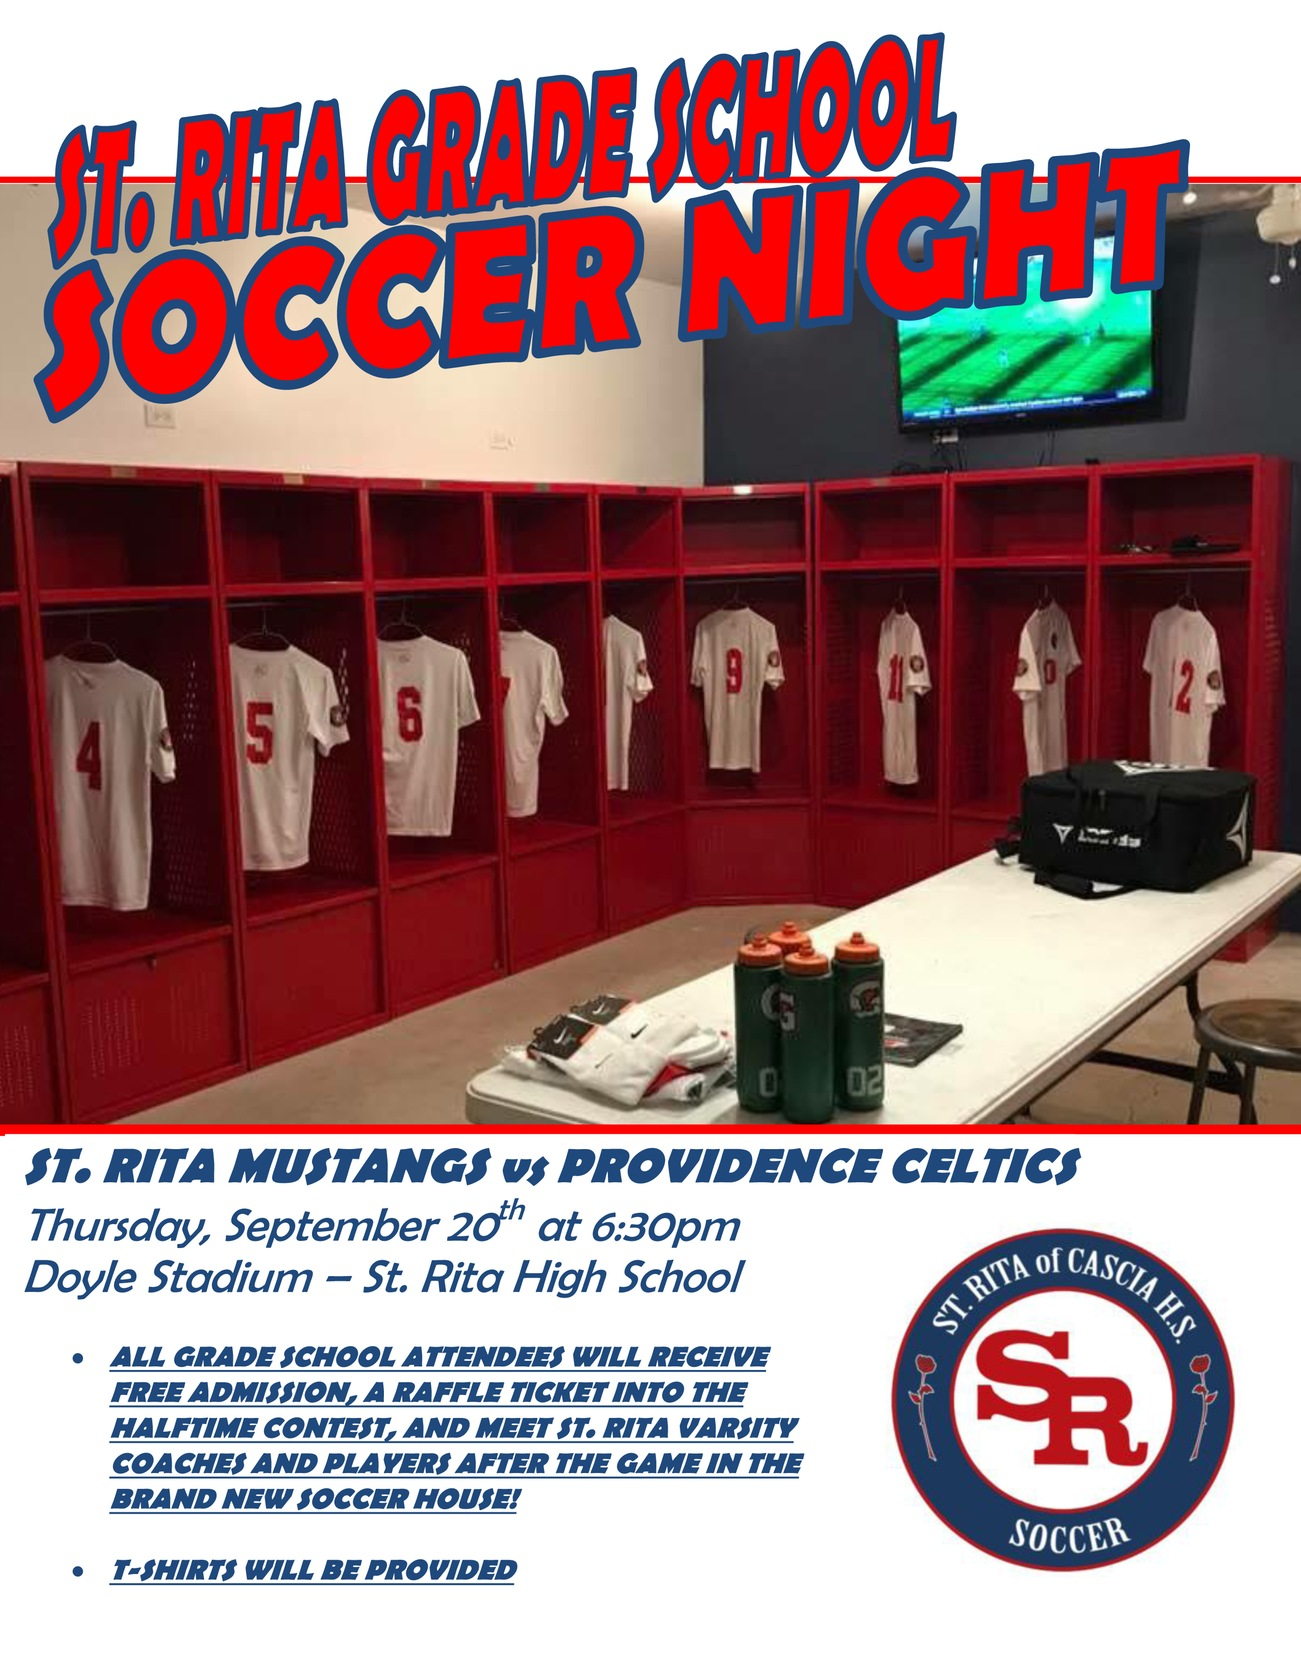 Join Us For Grade School Soccer Night!